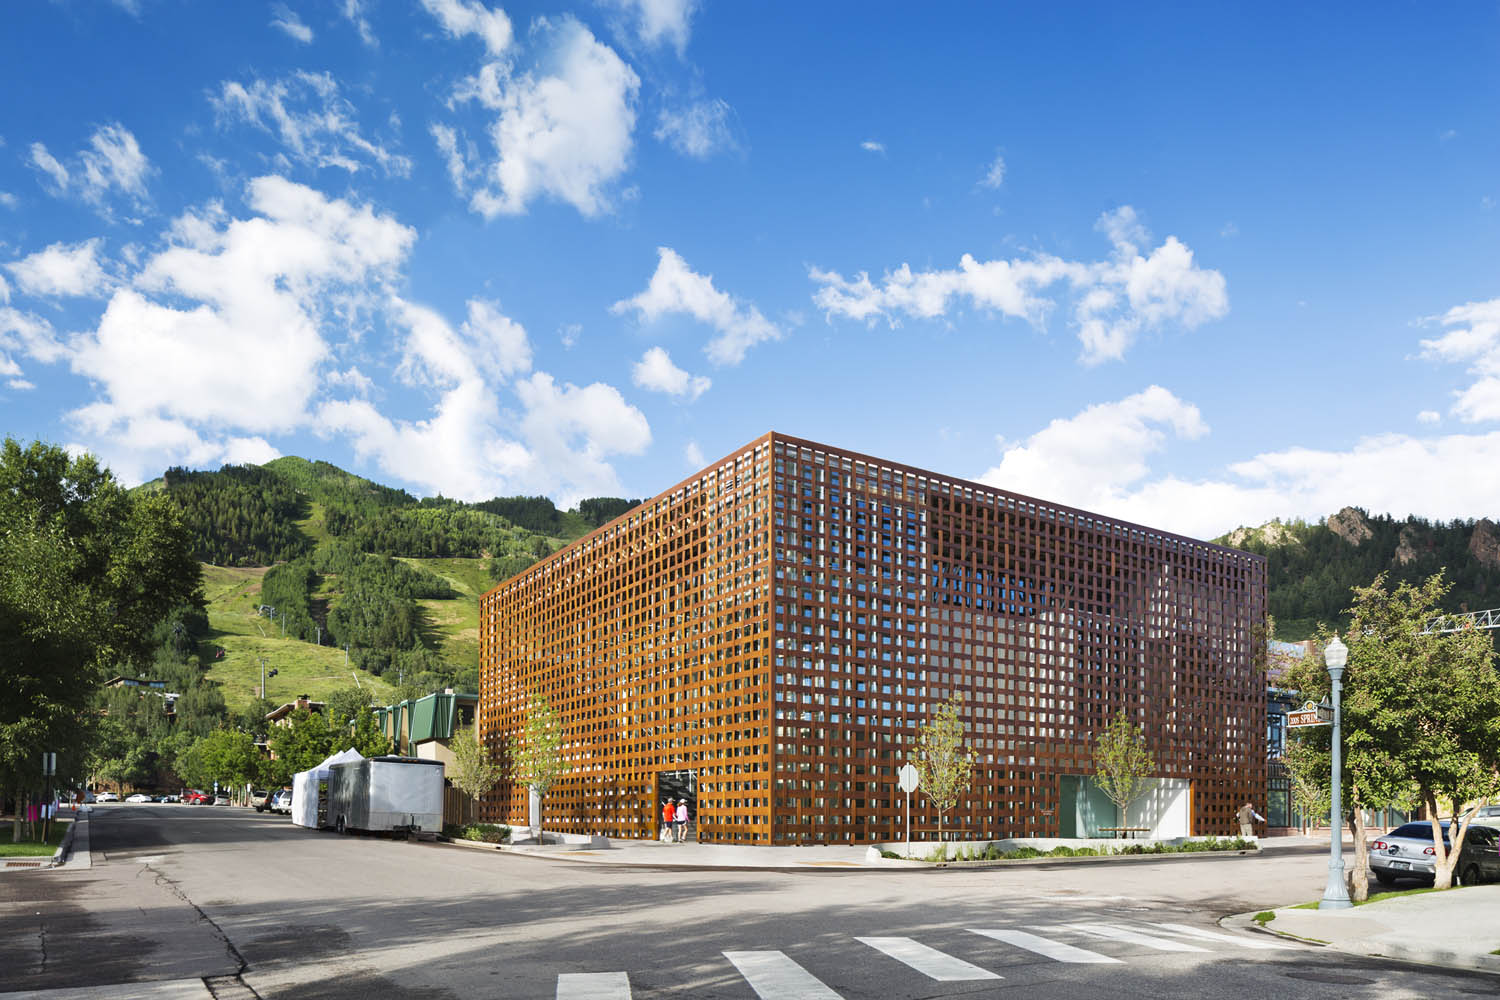 mm_Aspen Art Museum design by Shigeru Ban Architects_04